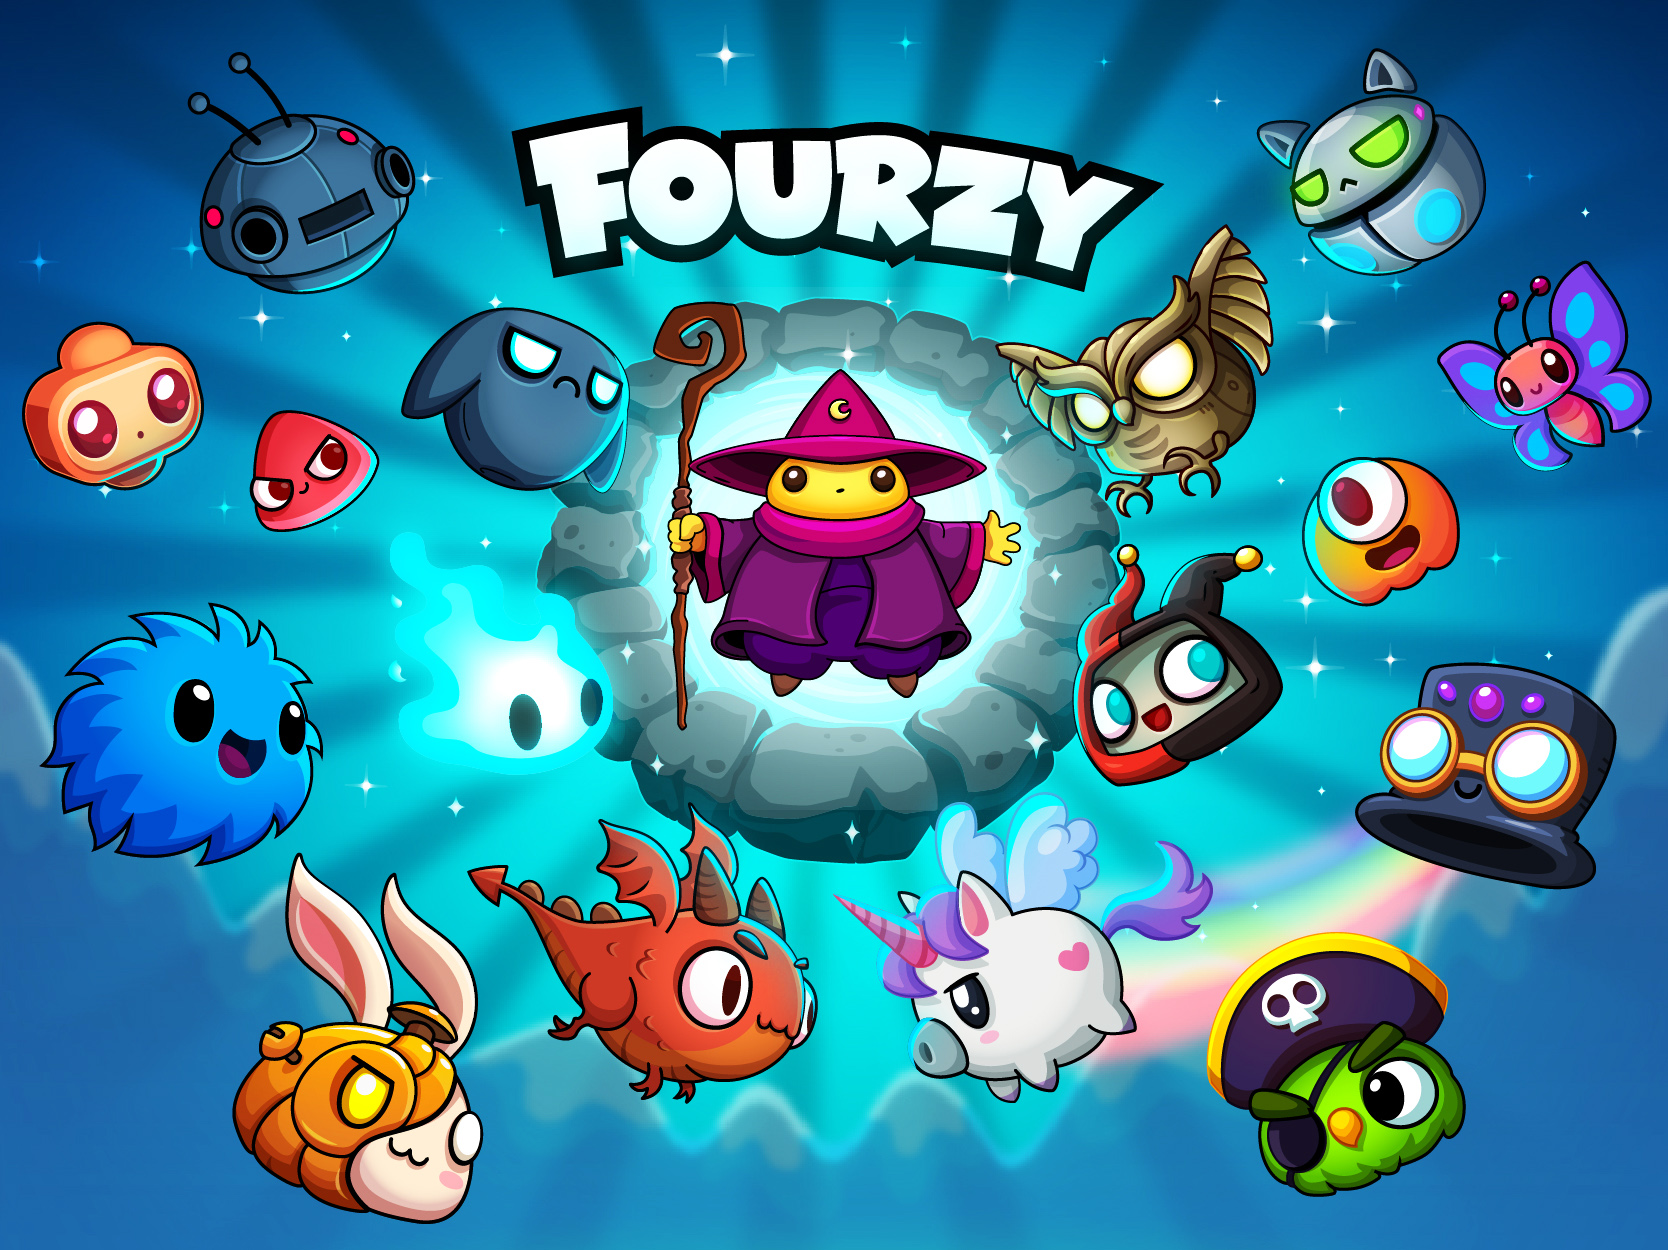 Fourzy by MindIsle Games